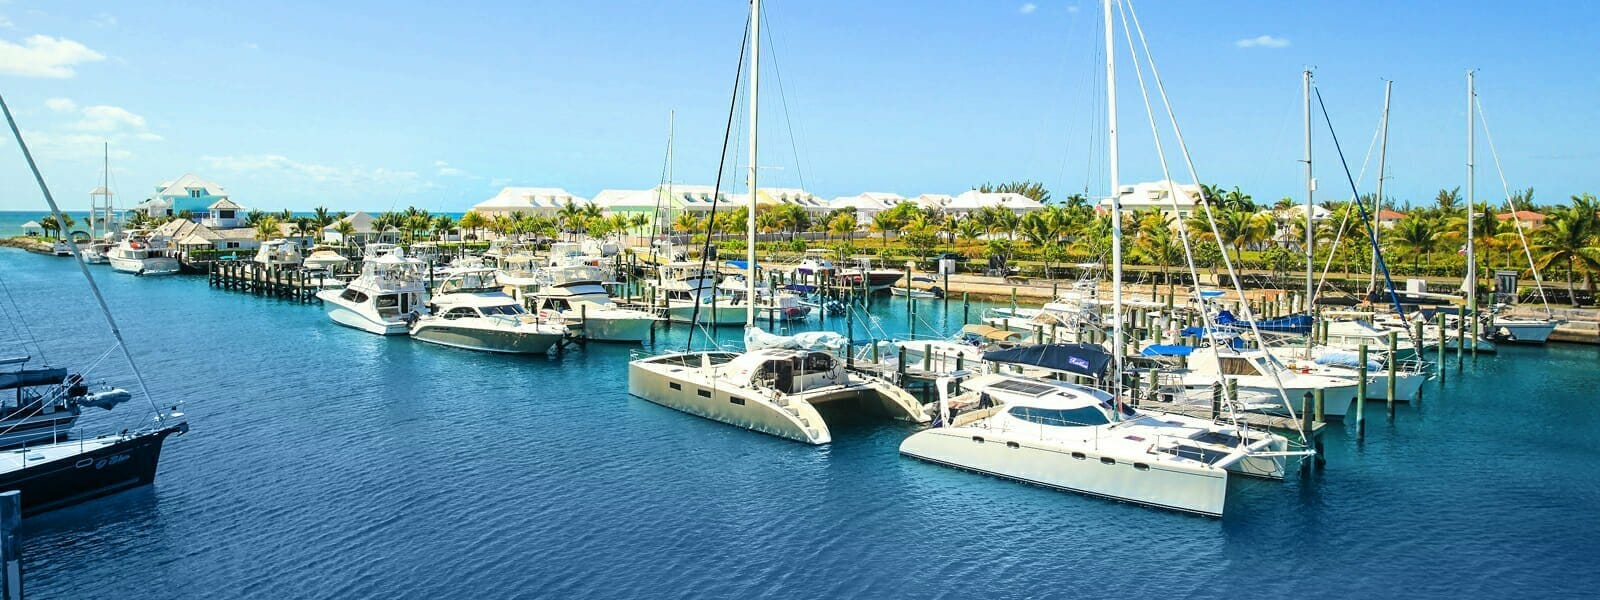 Palm Cay / One Marina   Homes in the Bahamas   Real Estate